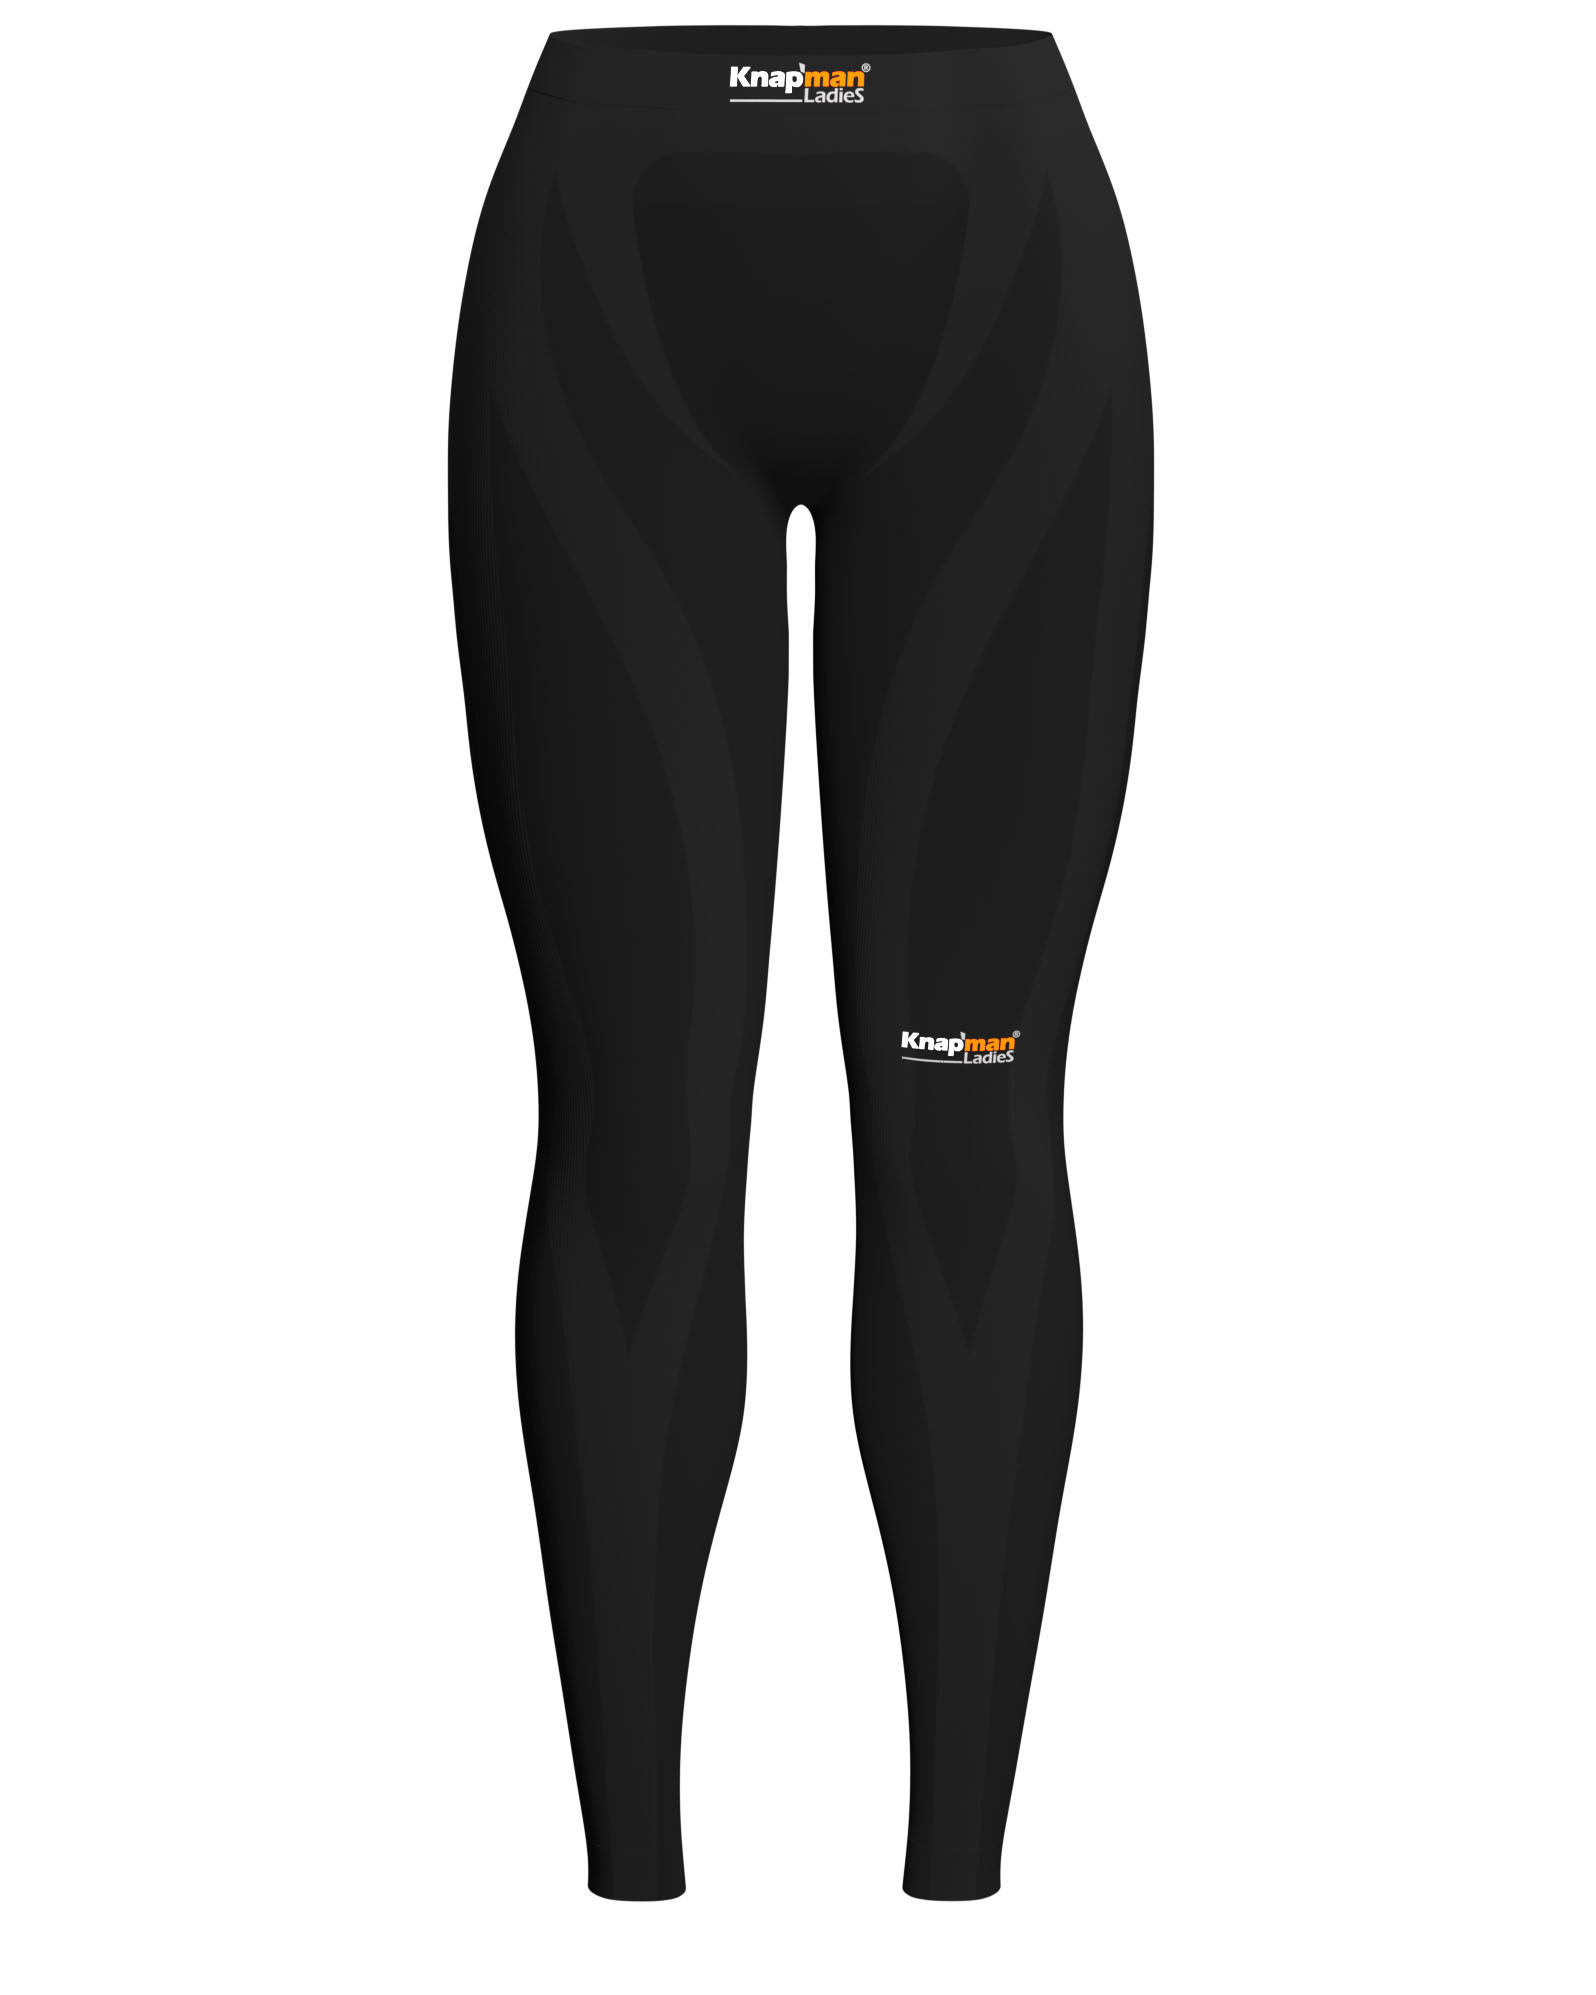 Knap'man Ladies Zoned Compression Tights 45%